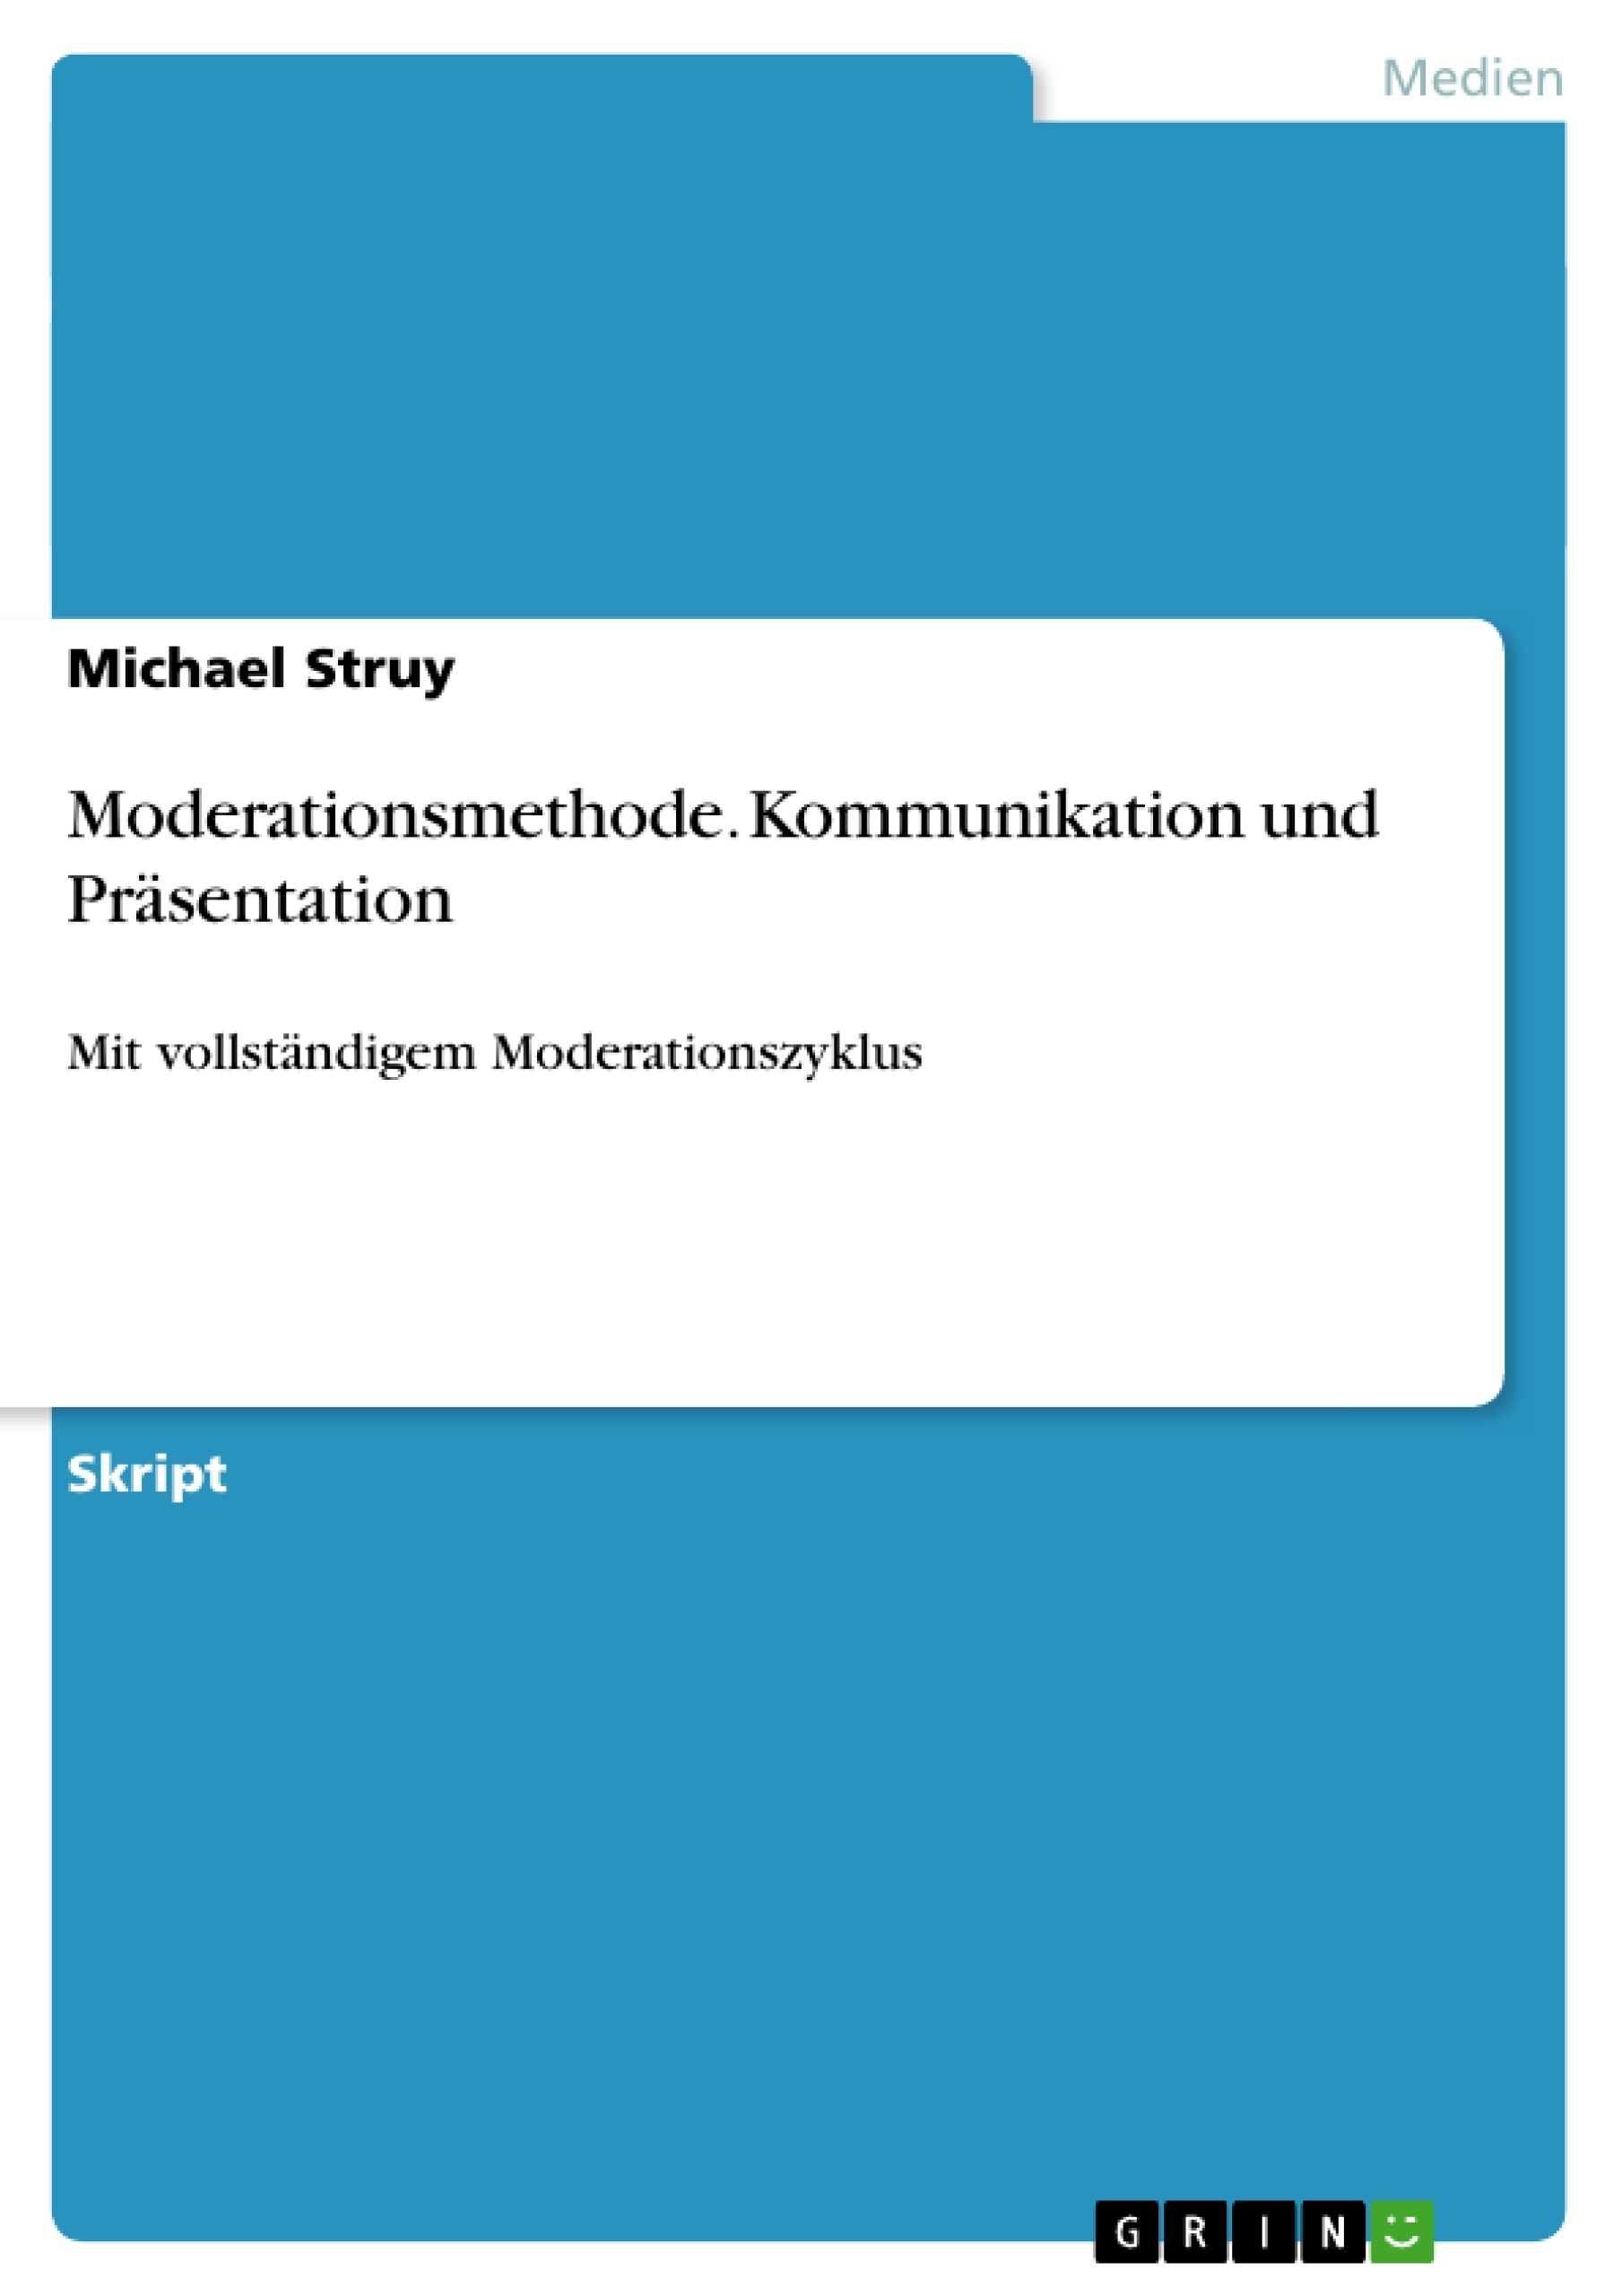 Titel: Moderationsmethode. Kommunikation und Präsentation